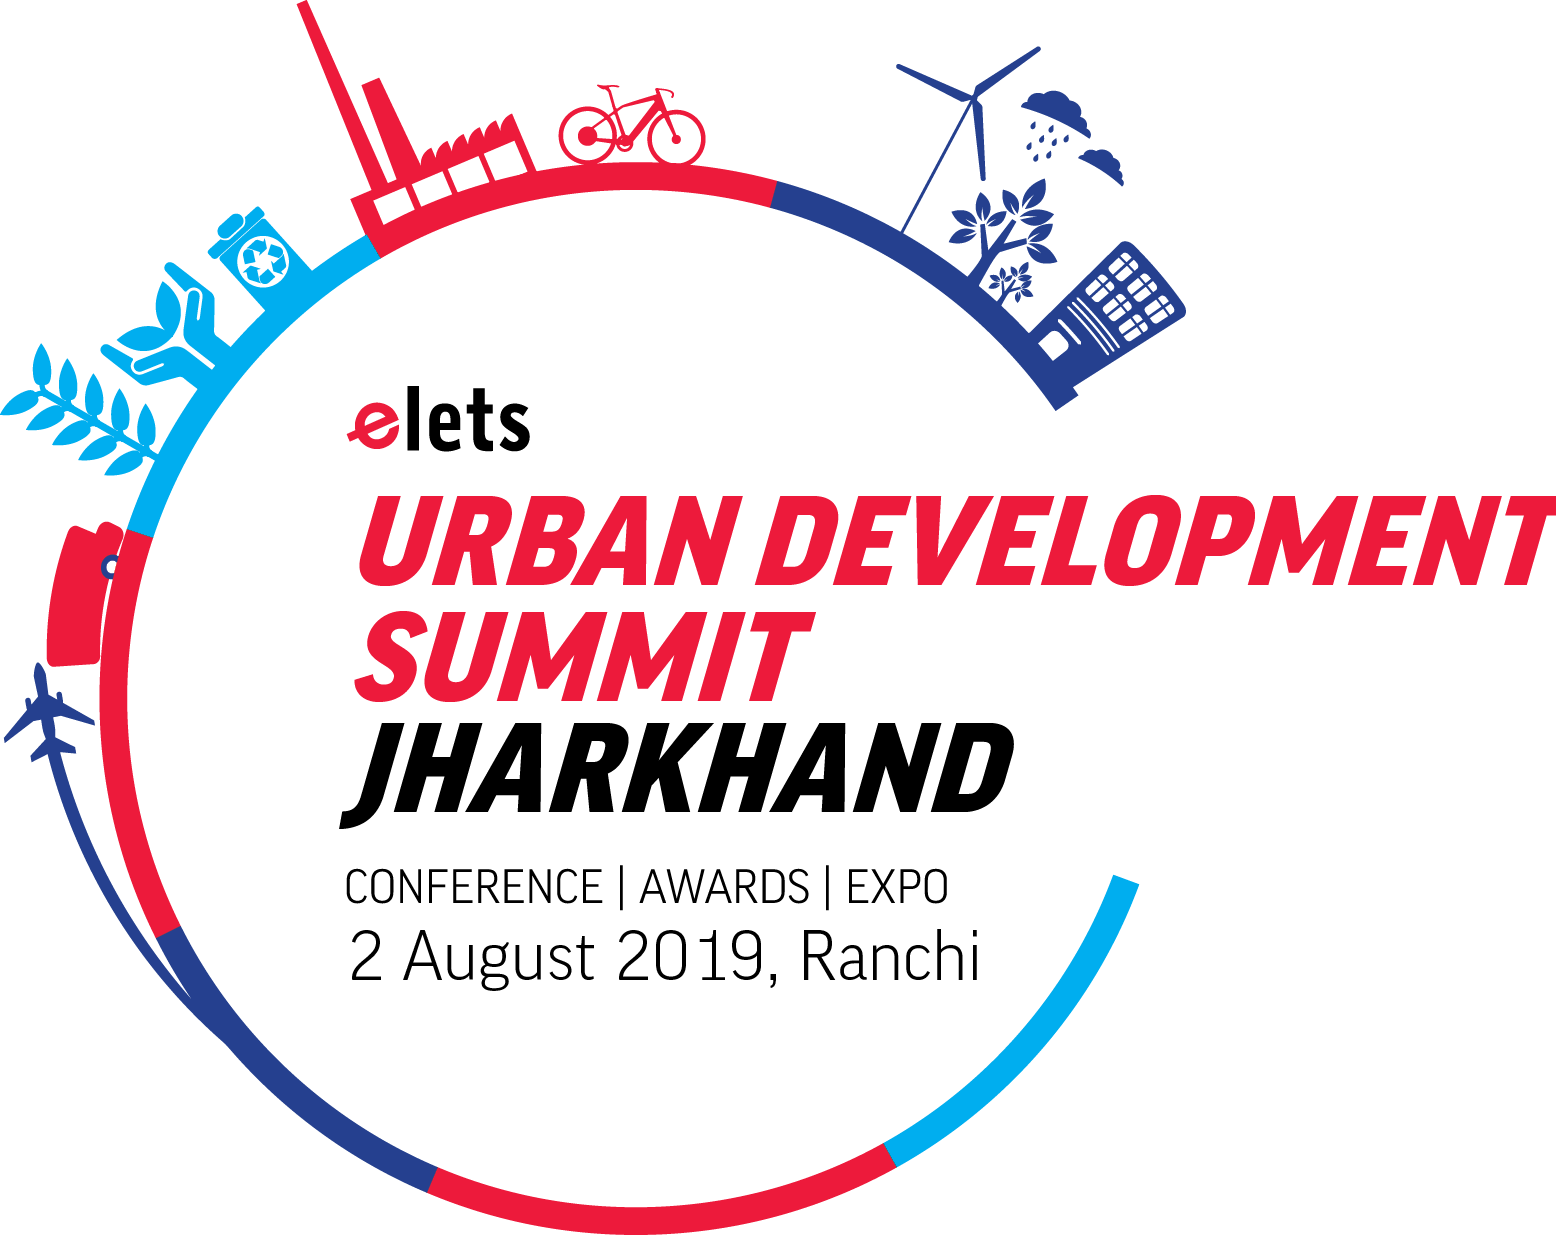 Urban Development Summit, Jharkhand